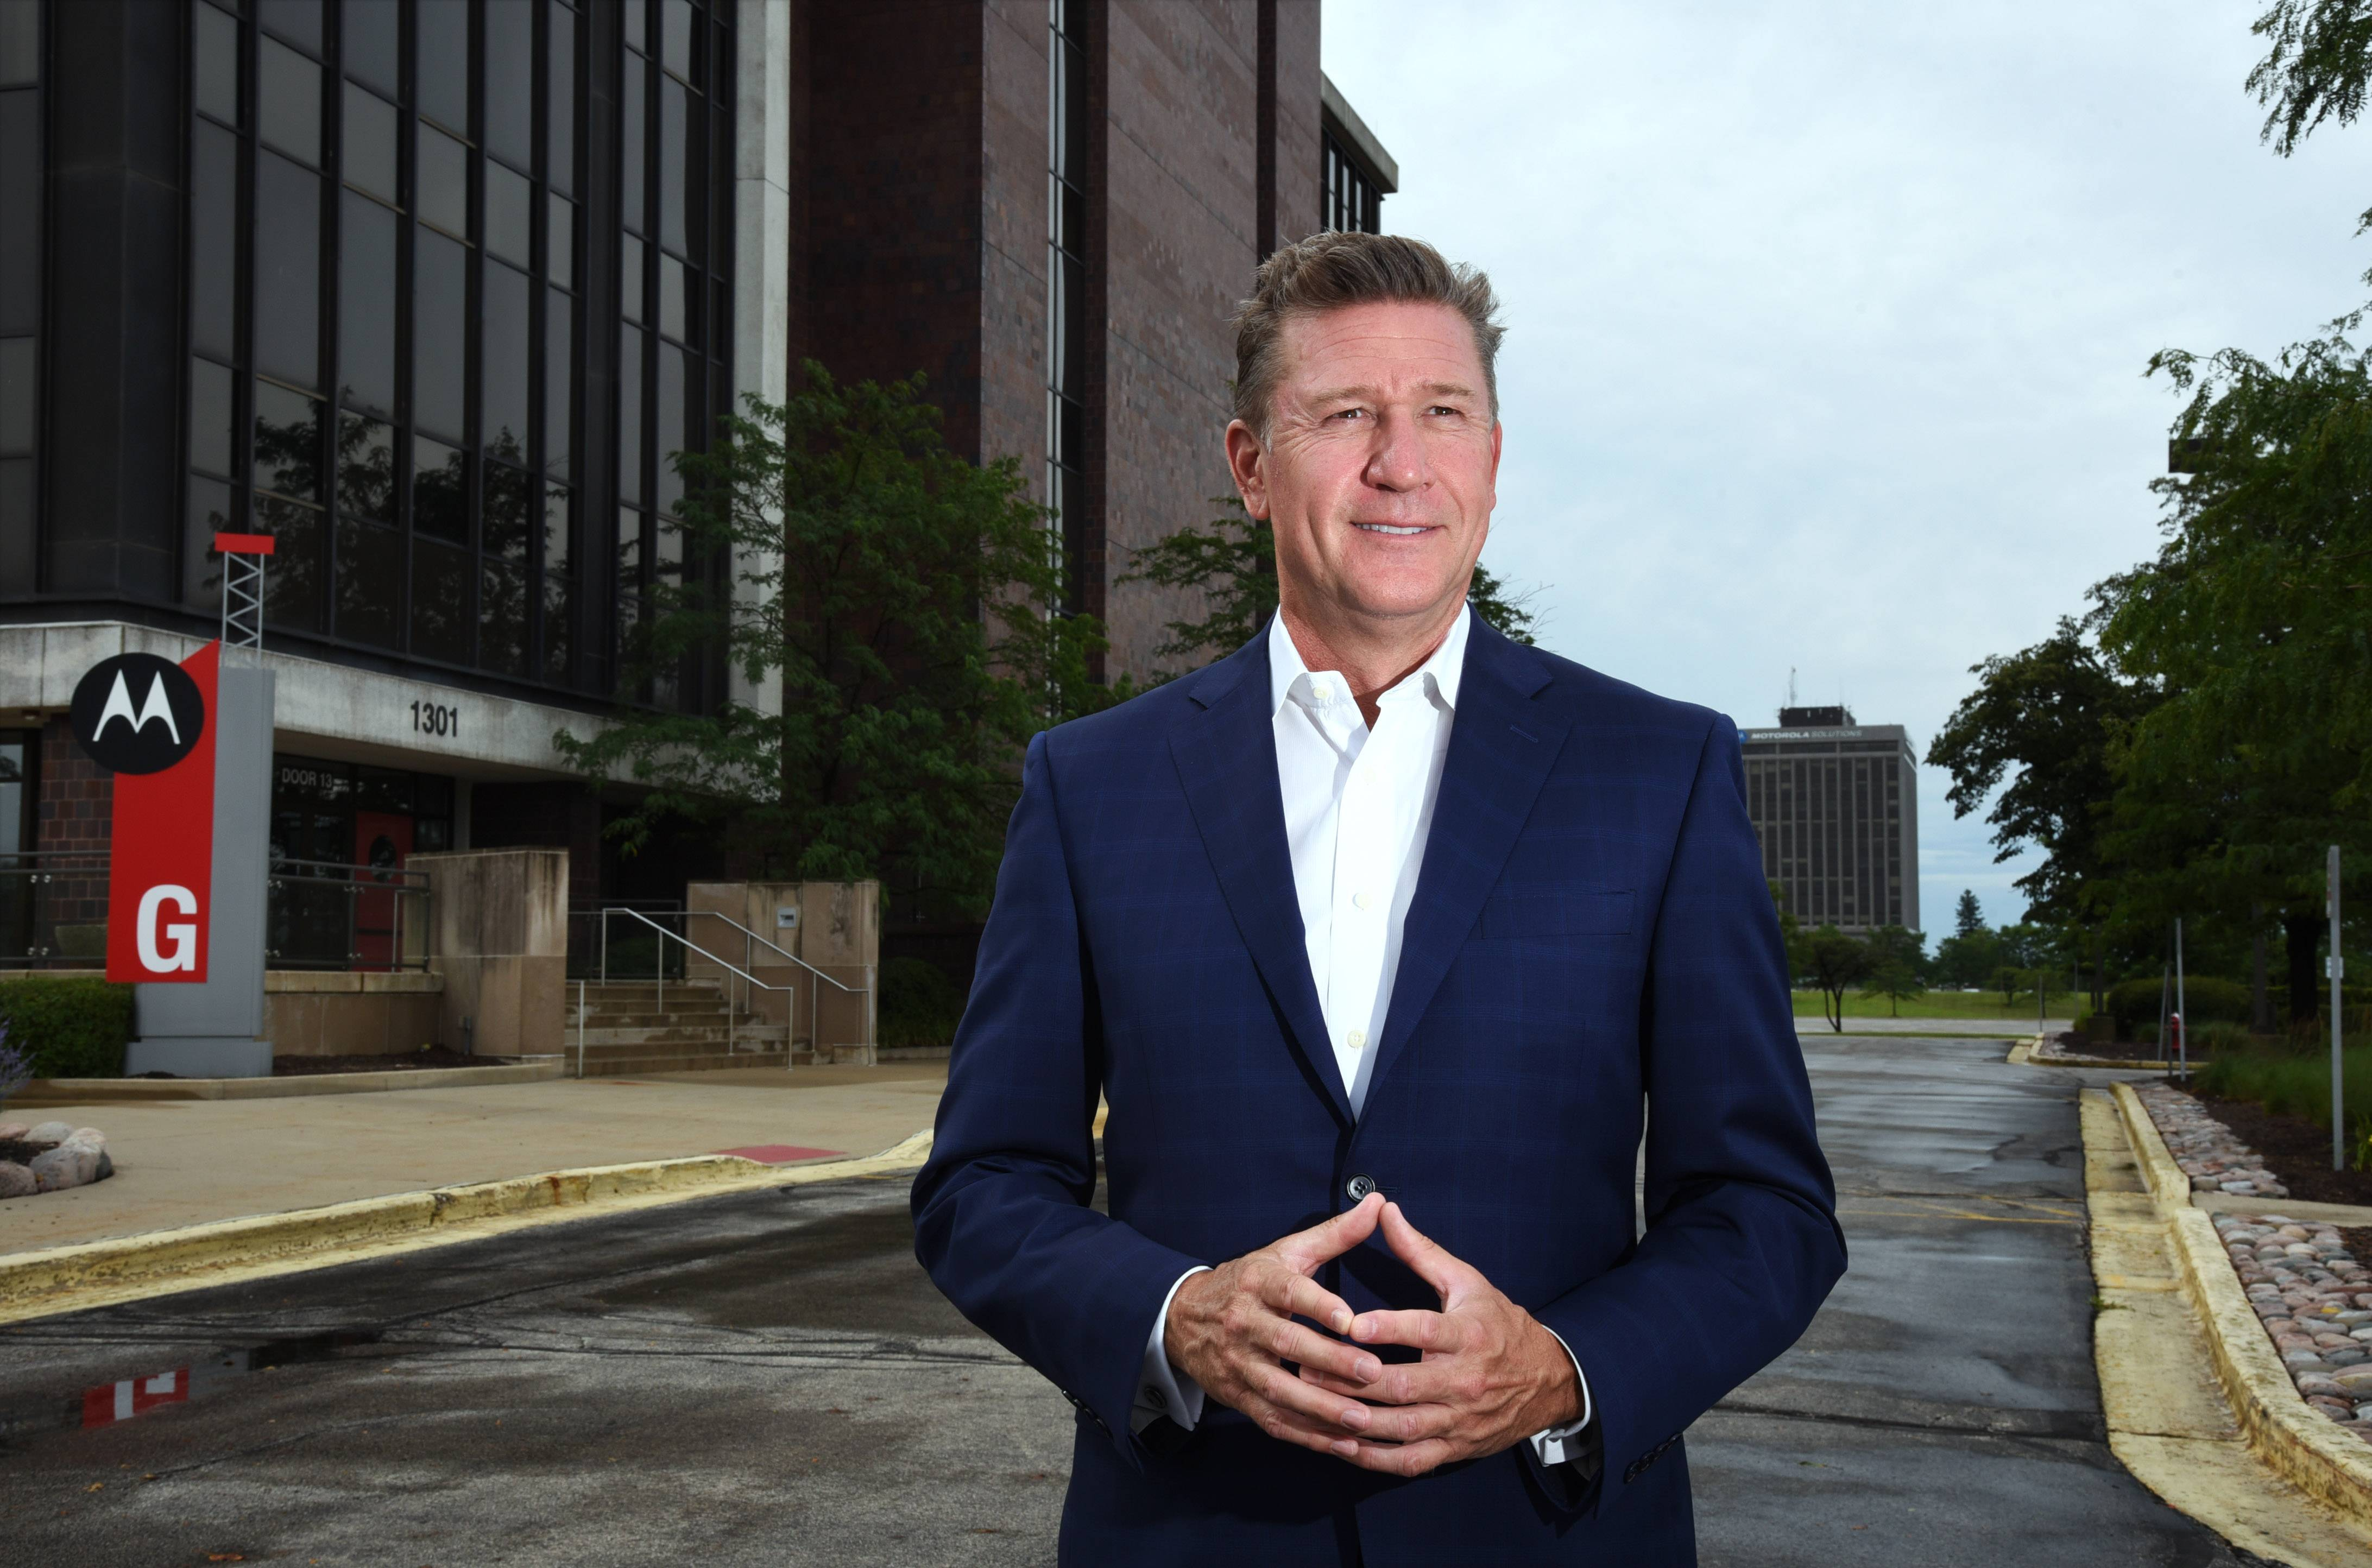 Bob Burk is managing partner of UrbanStreet Group LLC, the land owner and main redeveloped of the former Motorola Solutions campus in Schaumburg.